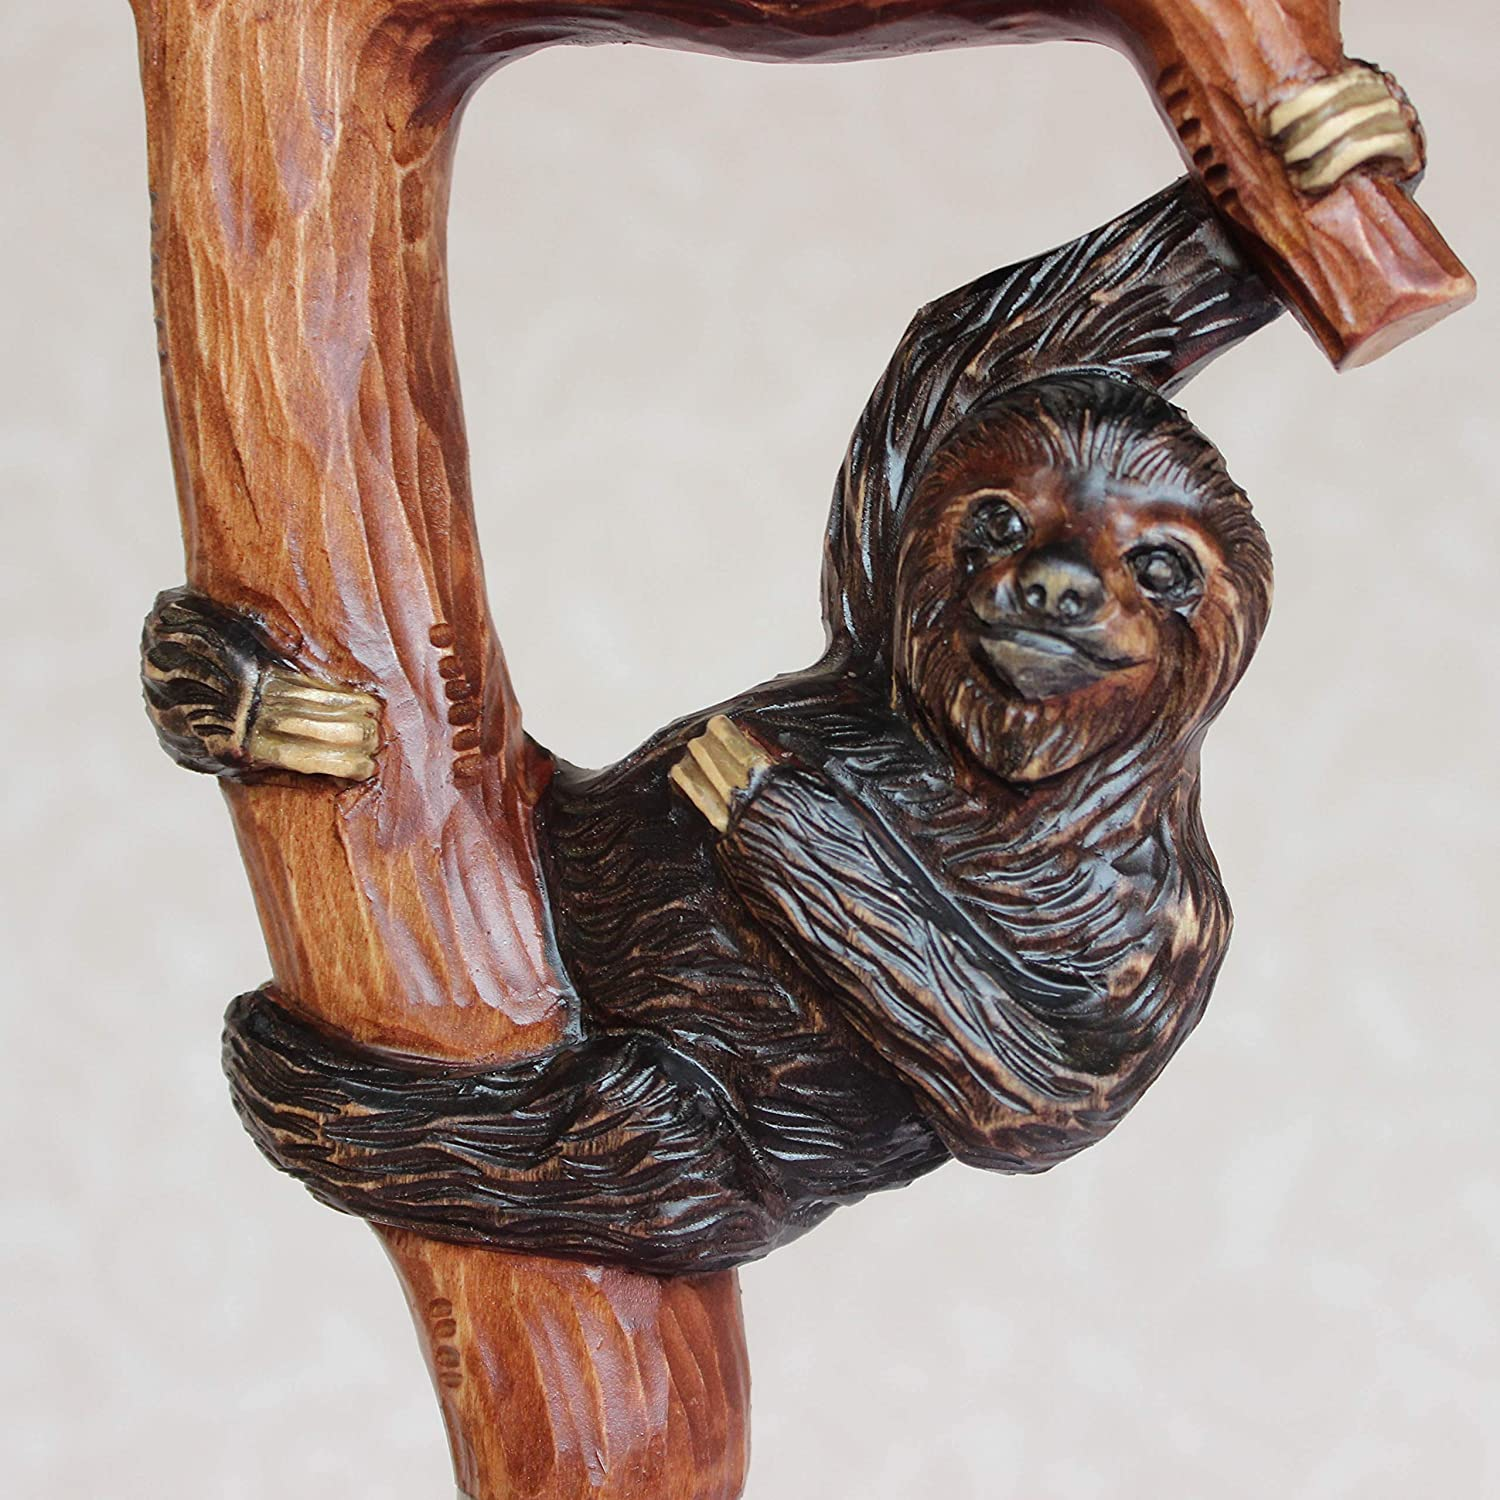 Custom Walking cane with Sloth Hand carved handle and shaft Hiking stick Wooden